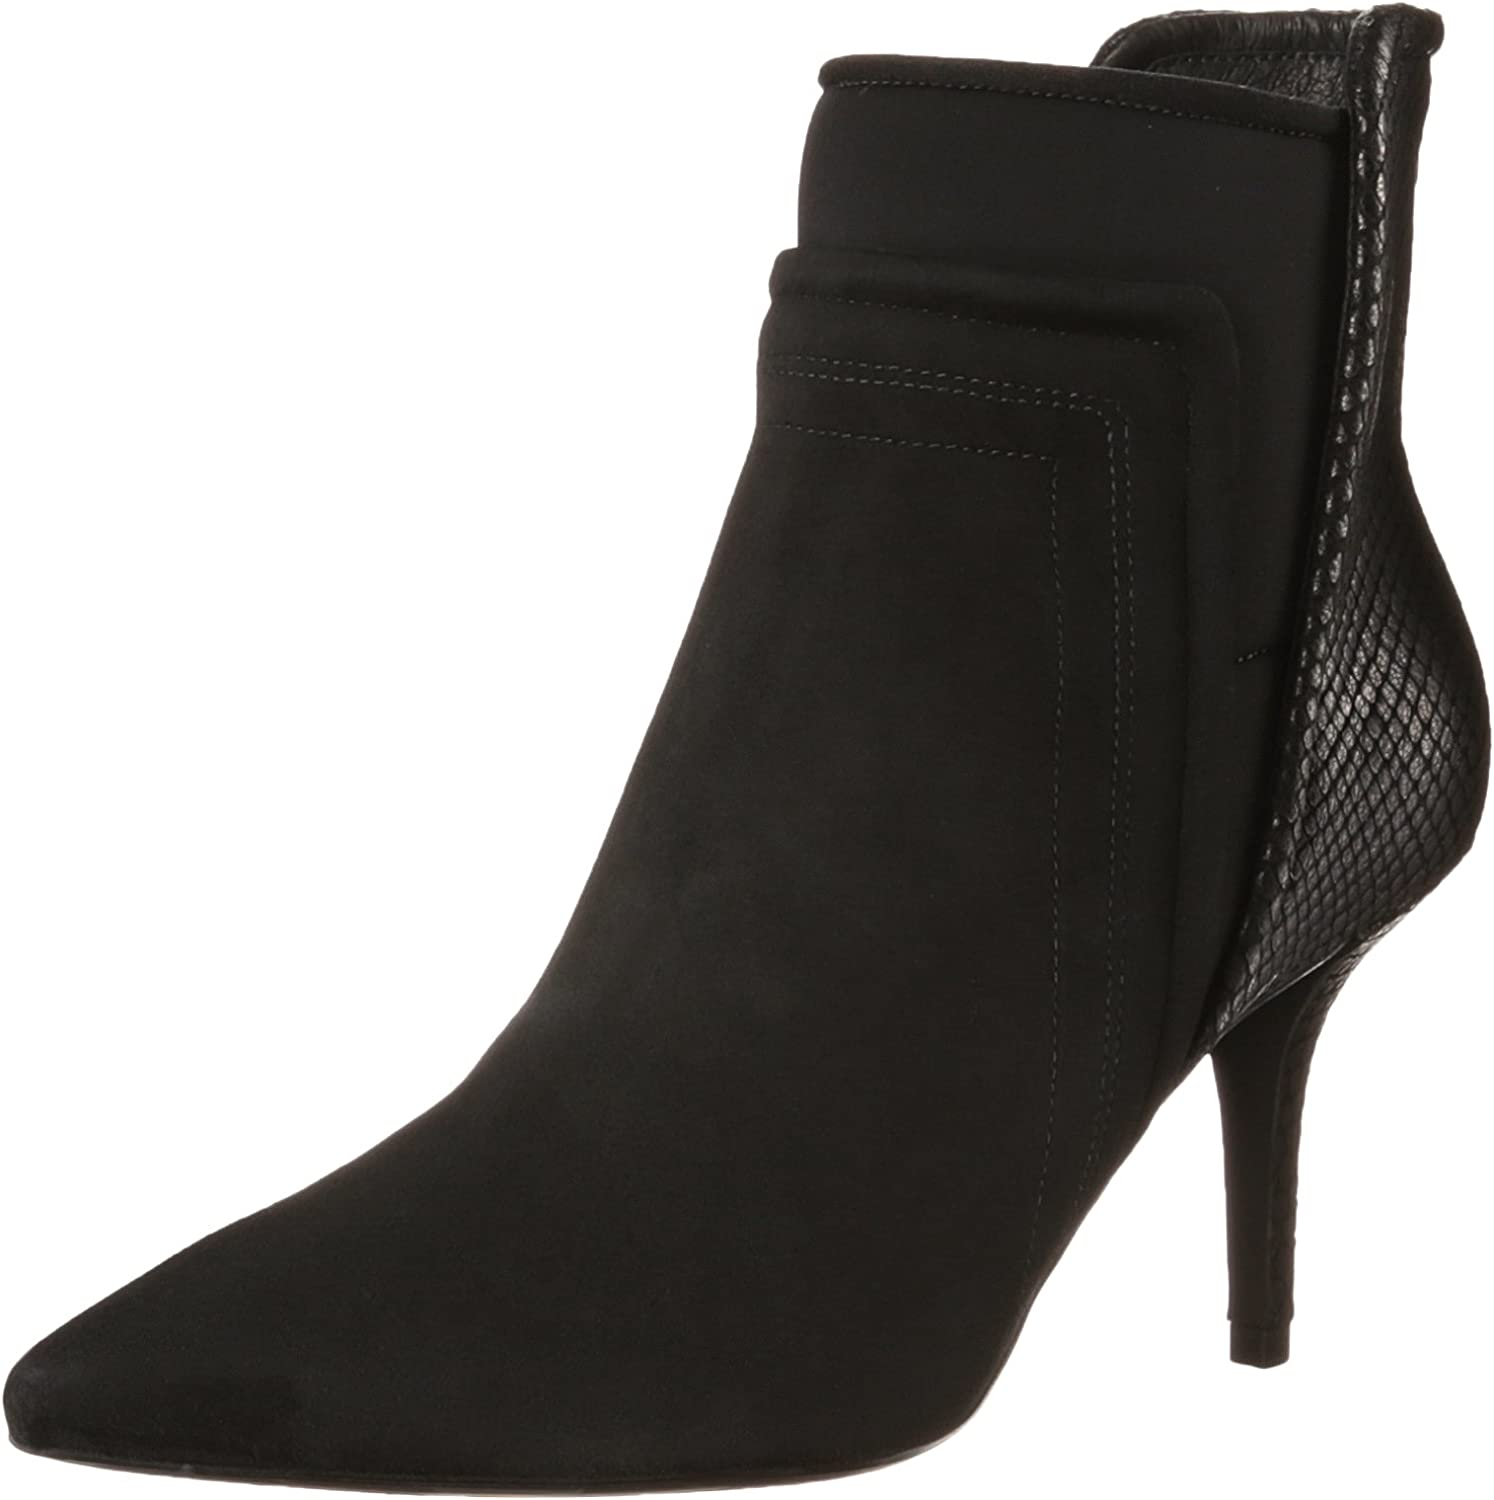 Kenneth Cole New York Women's Landon Ankle Bootie